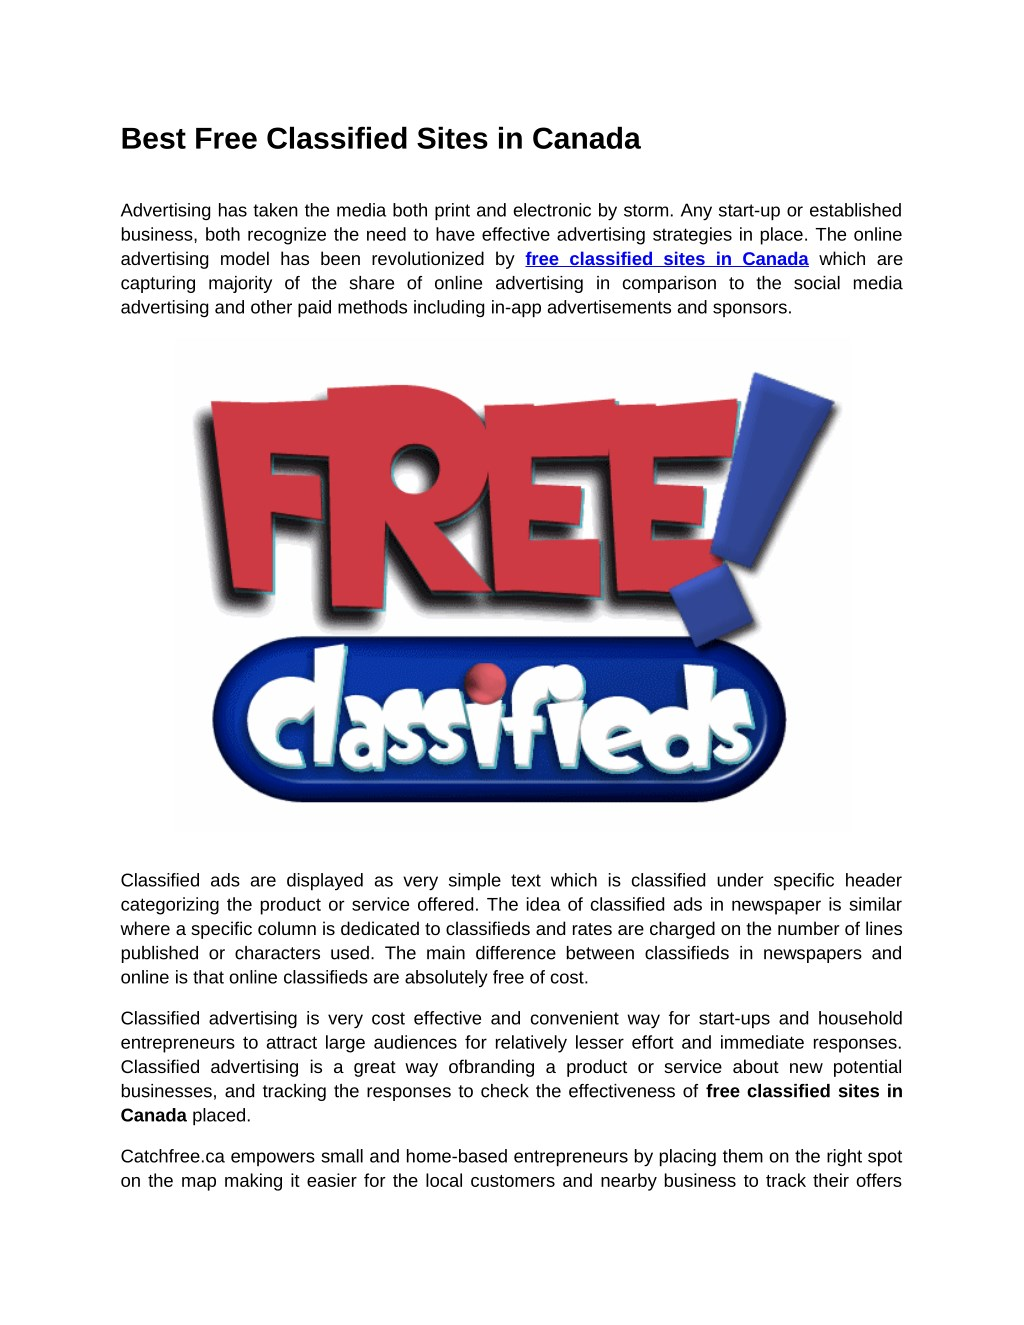 ppt best free classified sites in canada powerpoint presentation